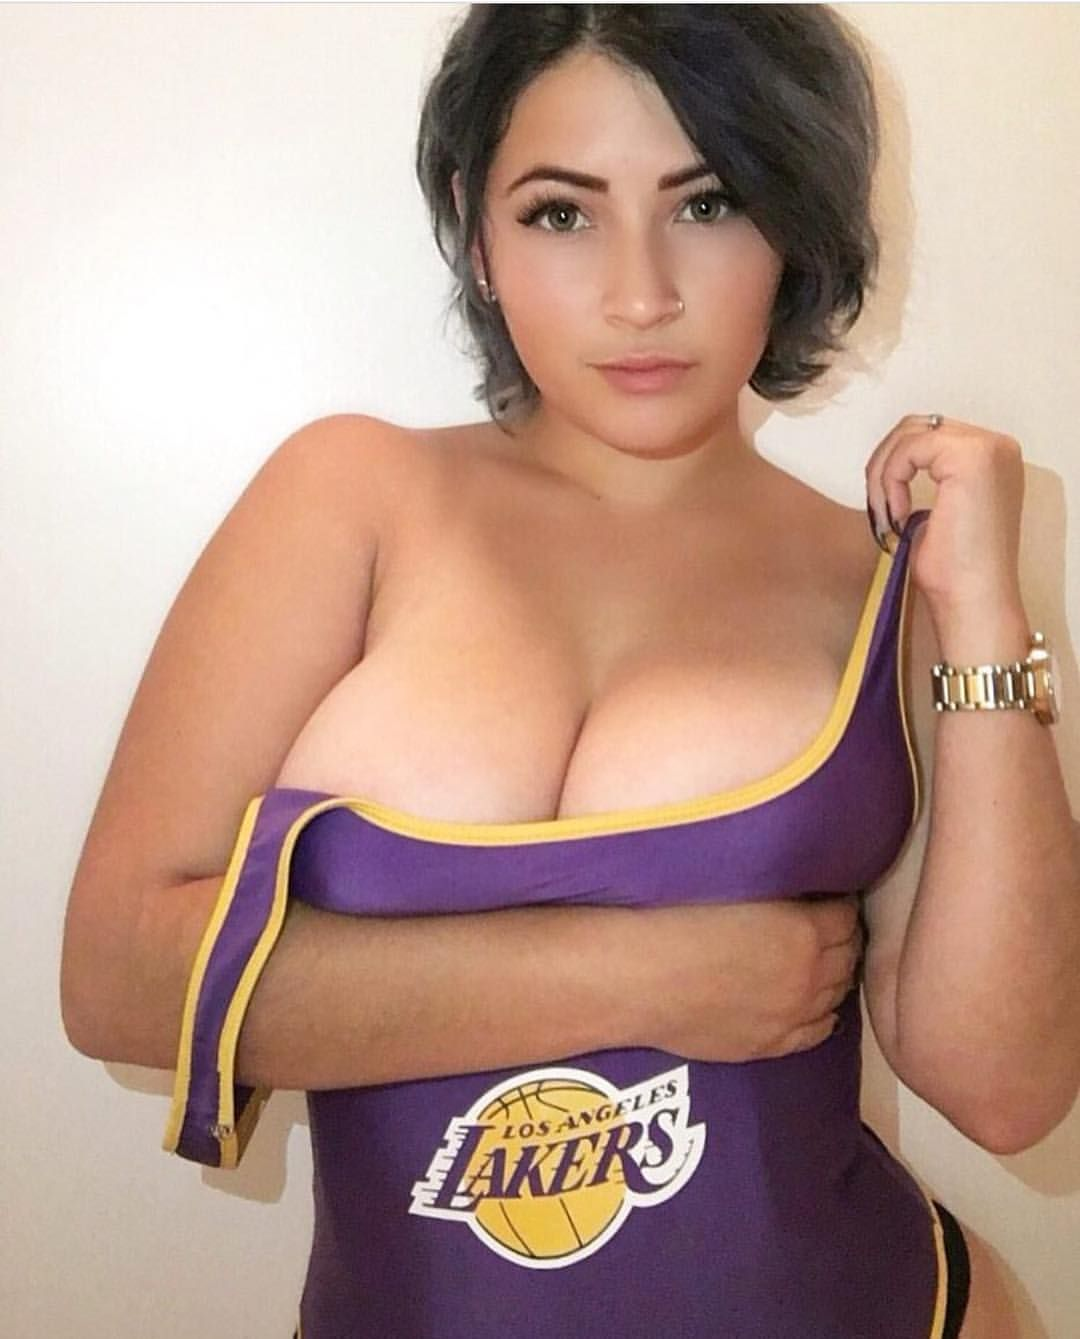 Laker Girl Pictures